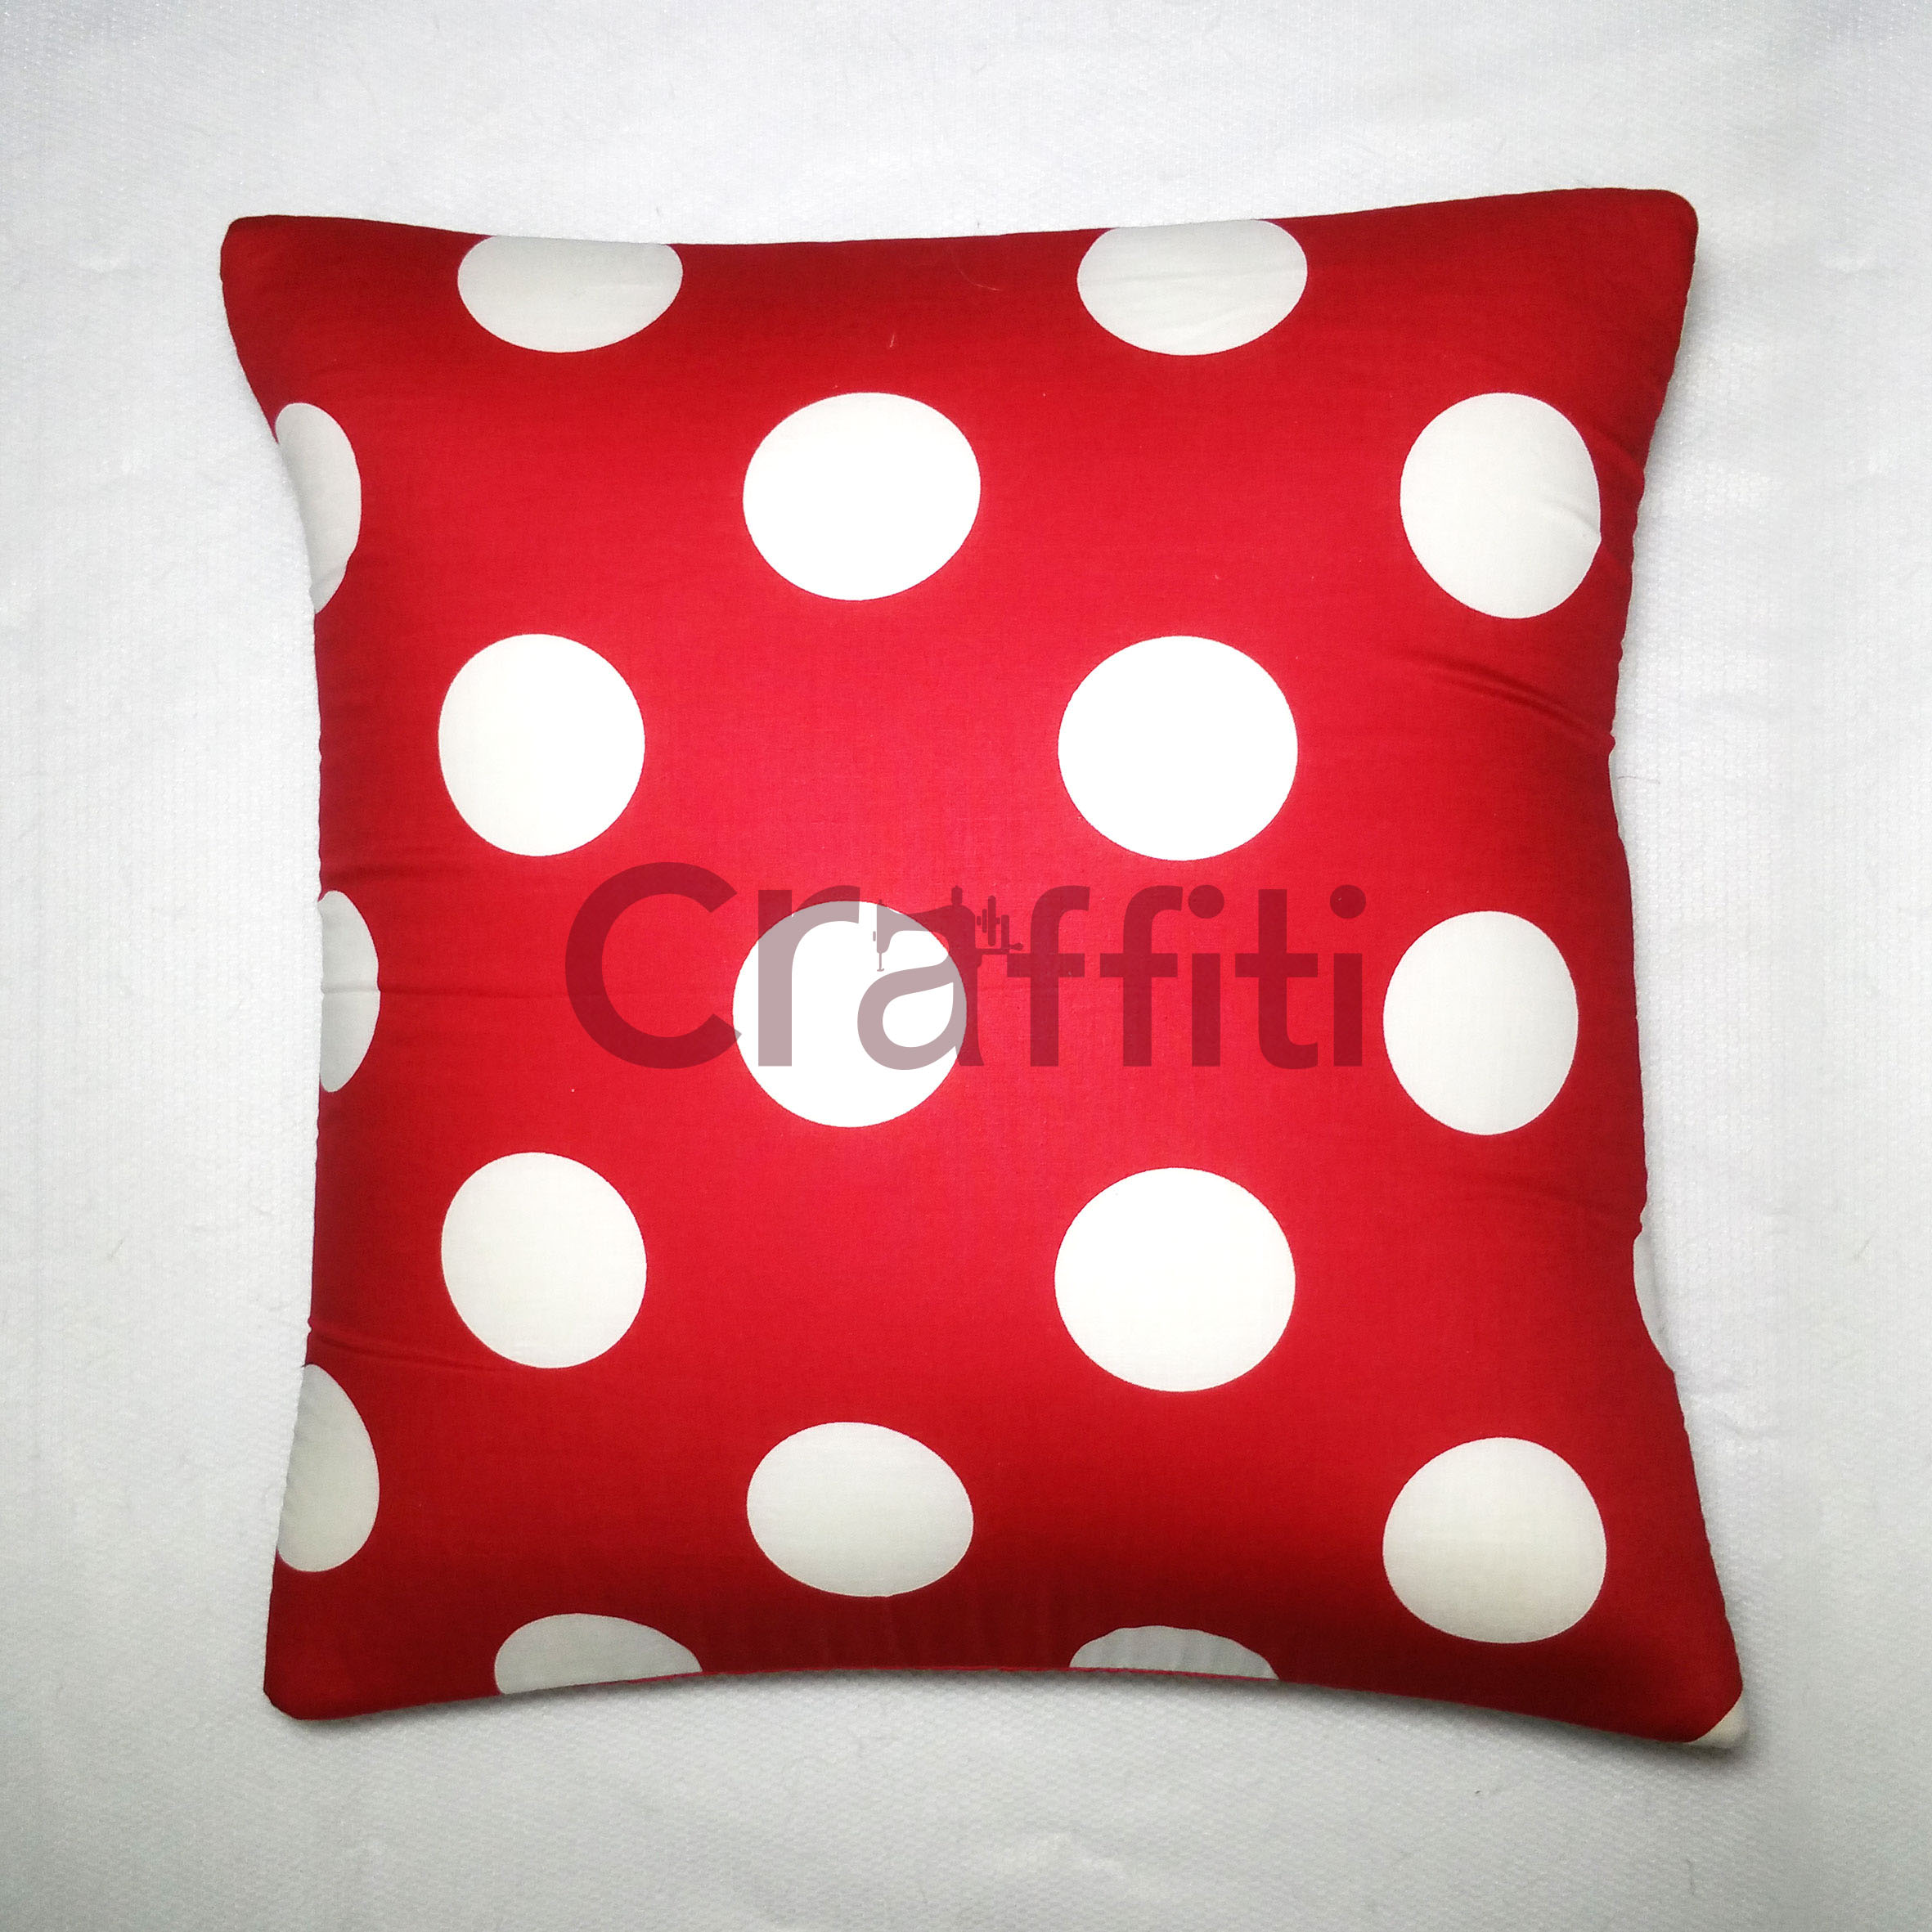 Big White Polkadot - Cushion Cover